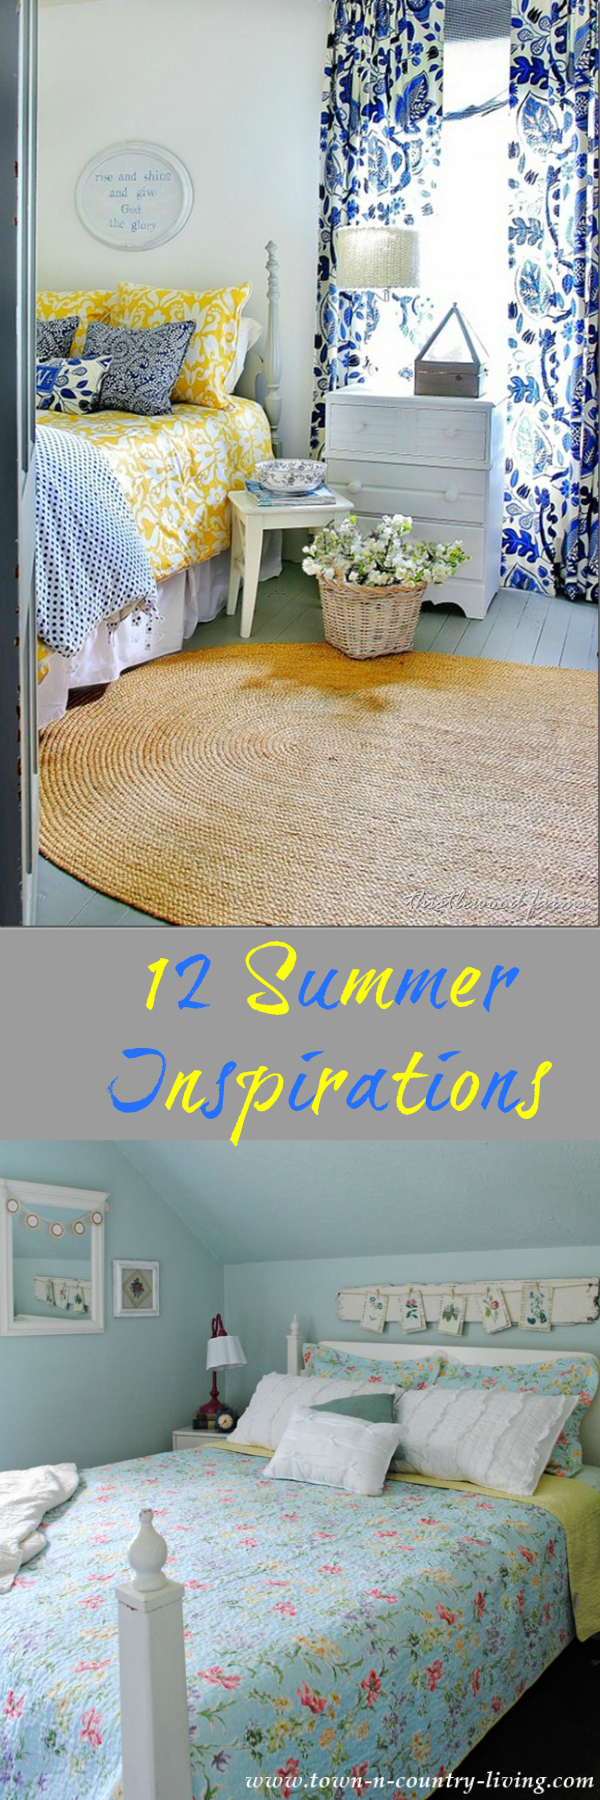 Summer is coming and we've got you covered for decor and DIY projects with these 12 summer inspirations for the home.